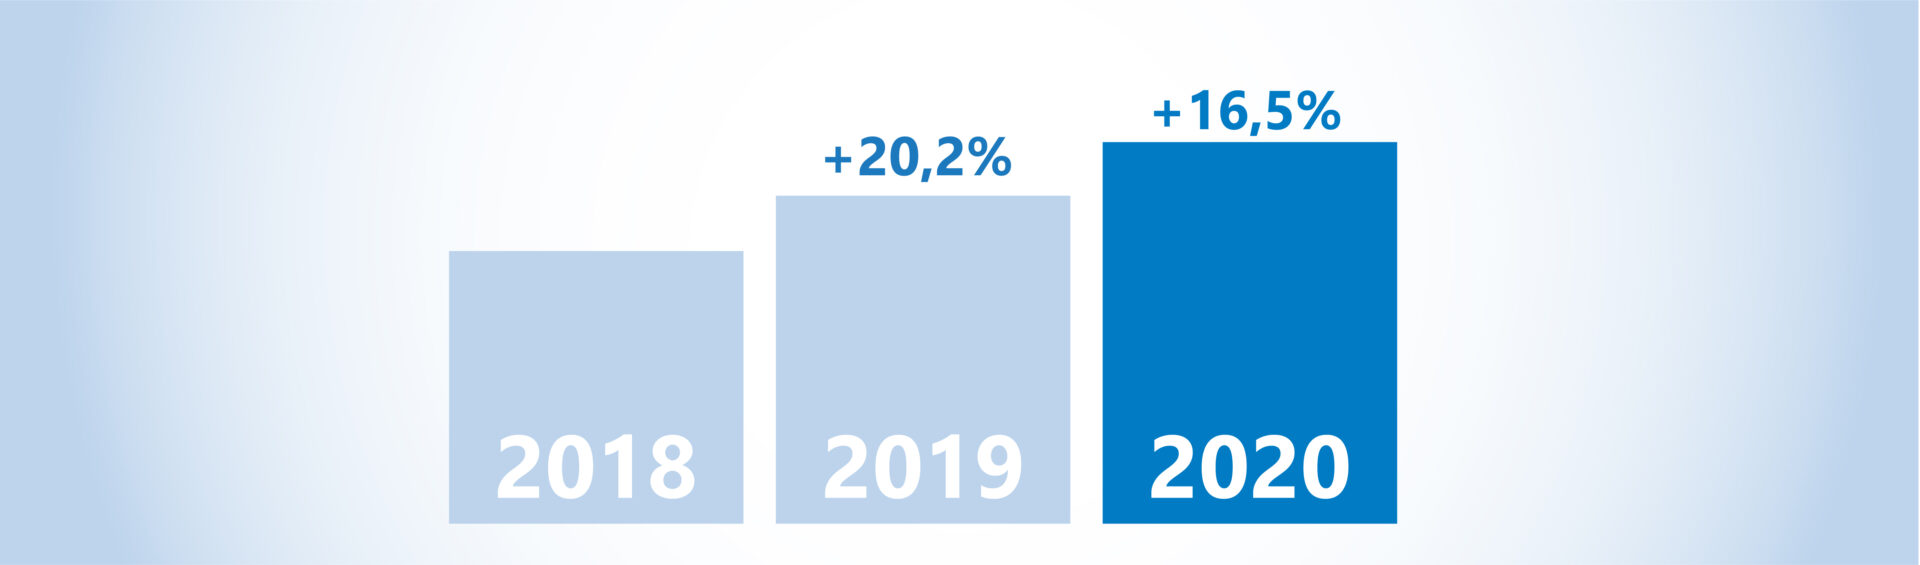 E-commerce growth from 2018 to 2020